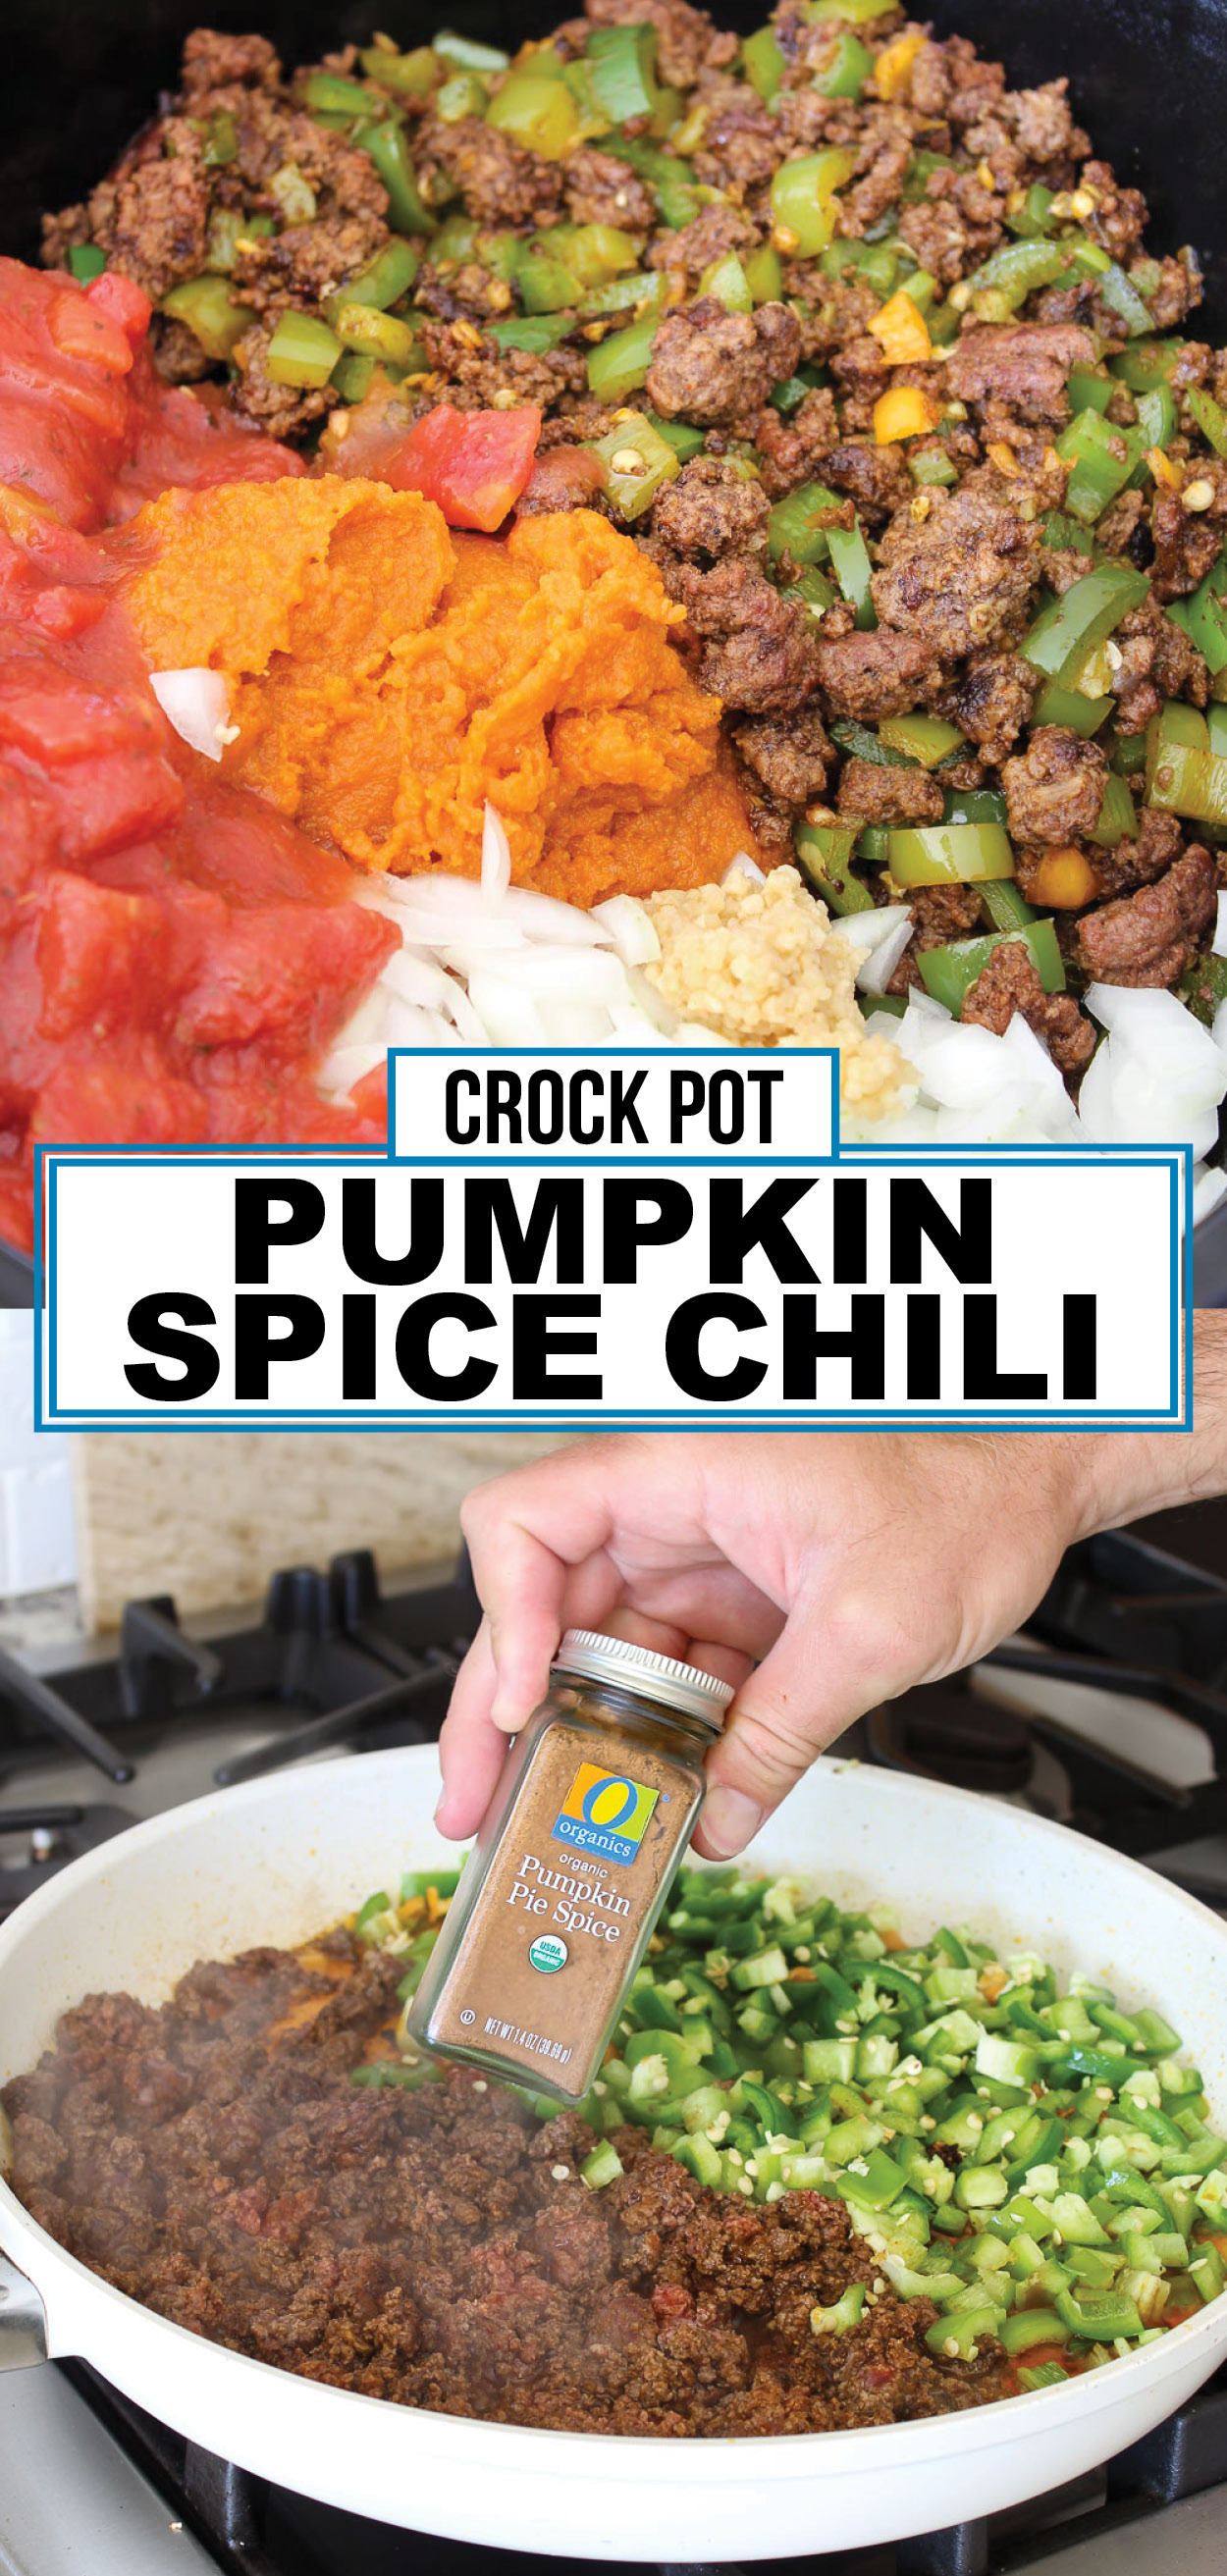 Crock Pot Pumpkin Spice Chili: You've got to taste it to believe it! It actually tastes like pumpkin spice mixed within a spicy and savory chili. Made with pumpkin purée in a slow cooker.